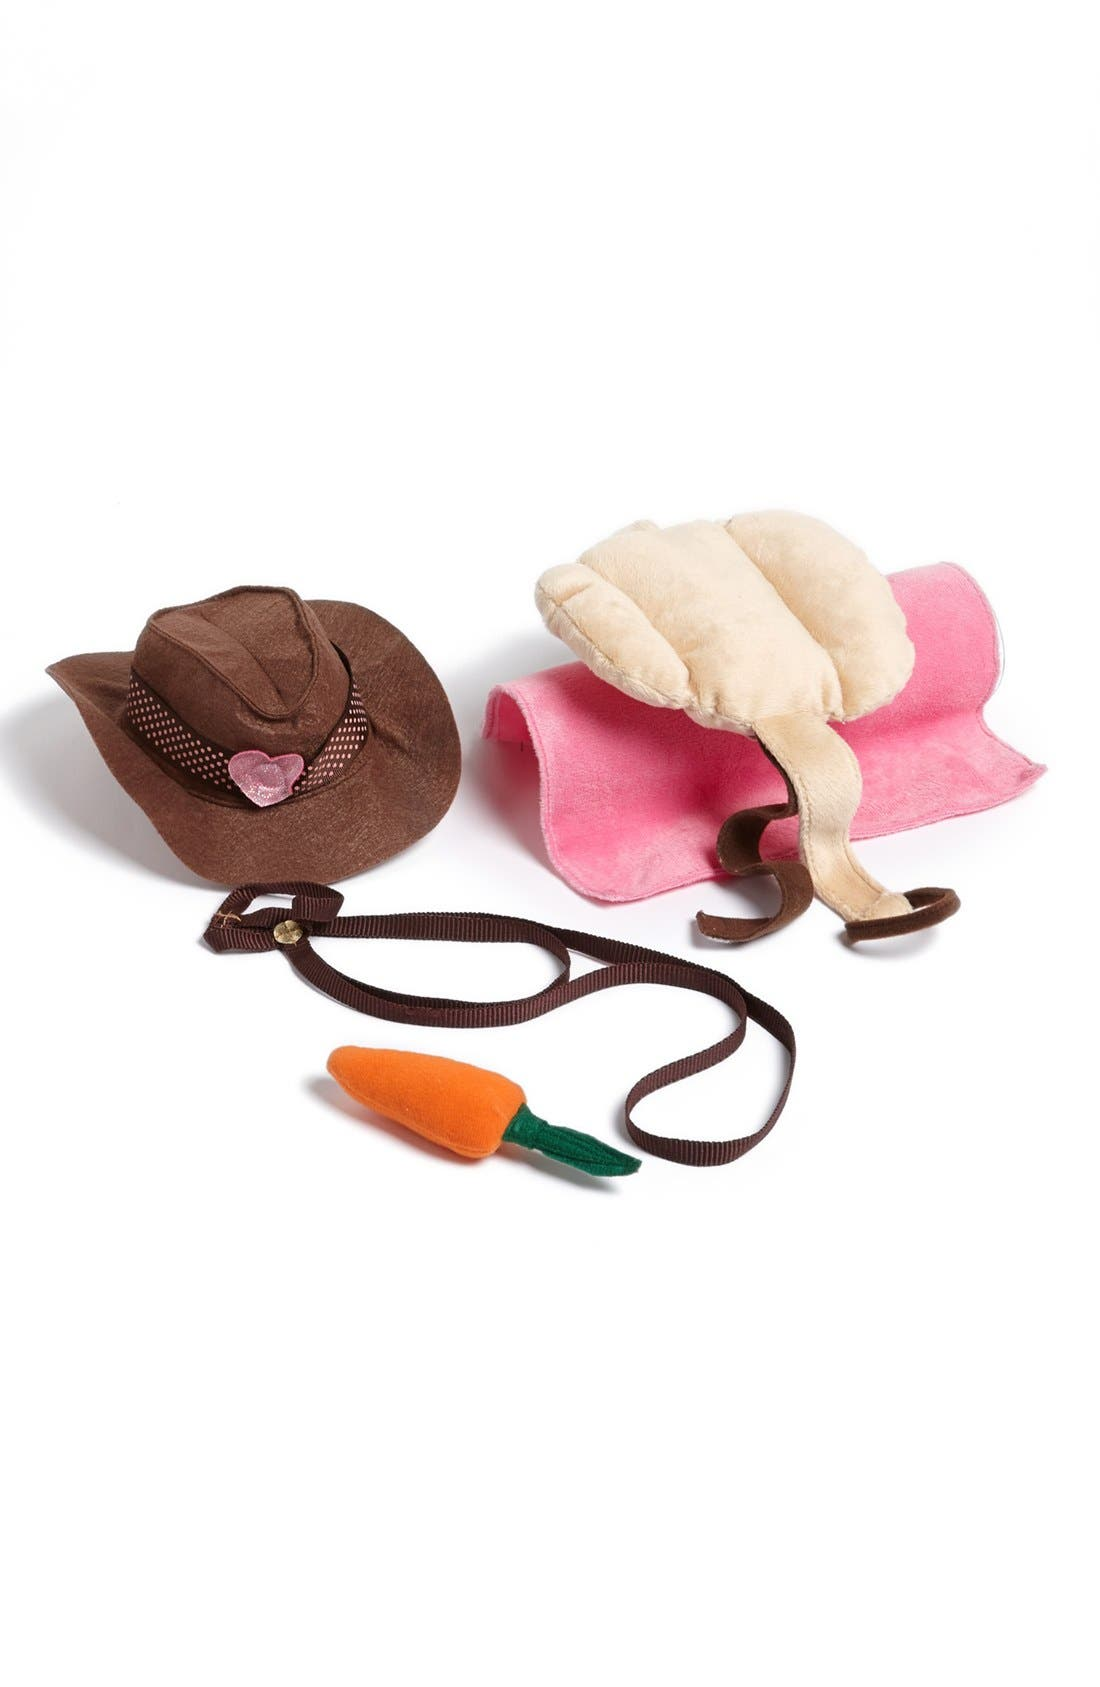 Alternate Image 1 Selected - Madame Alexander 'Cowgirl' Accessory Set